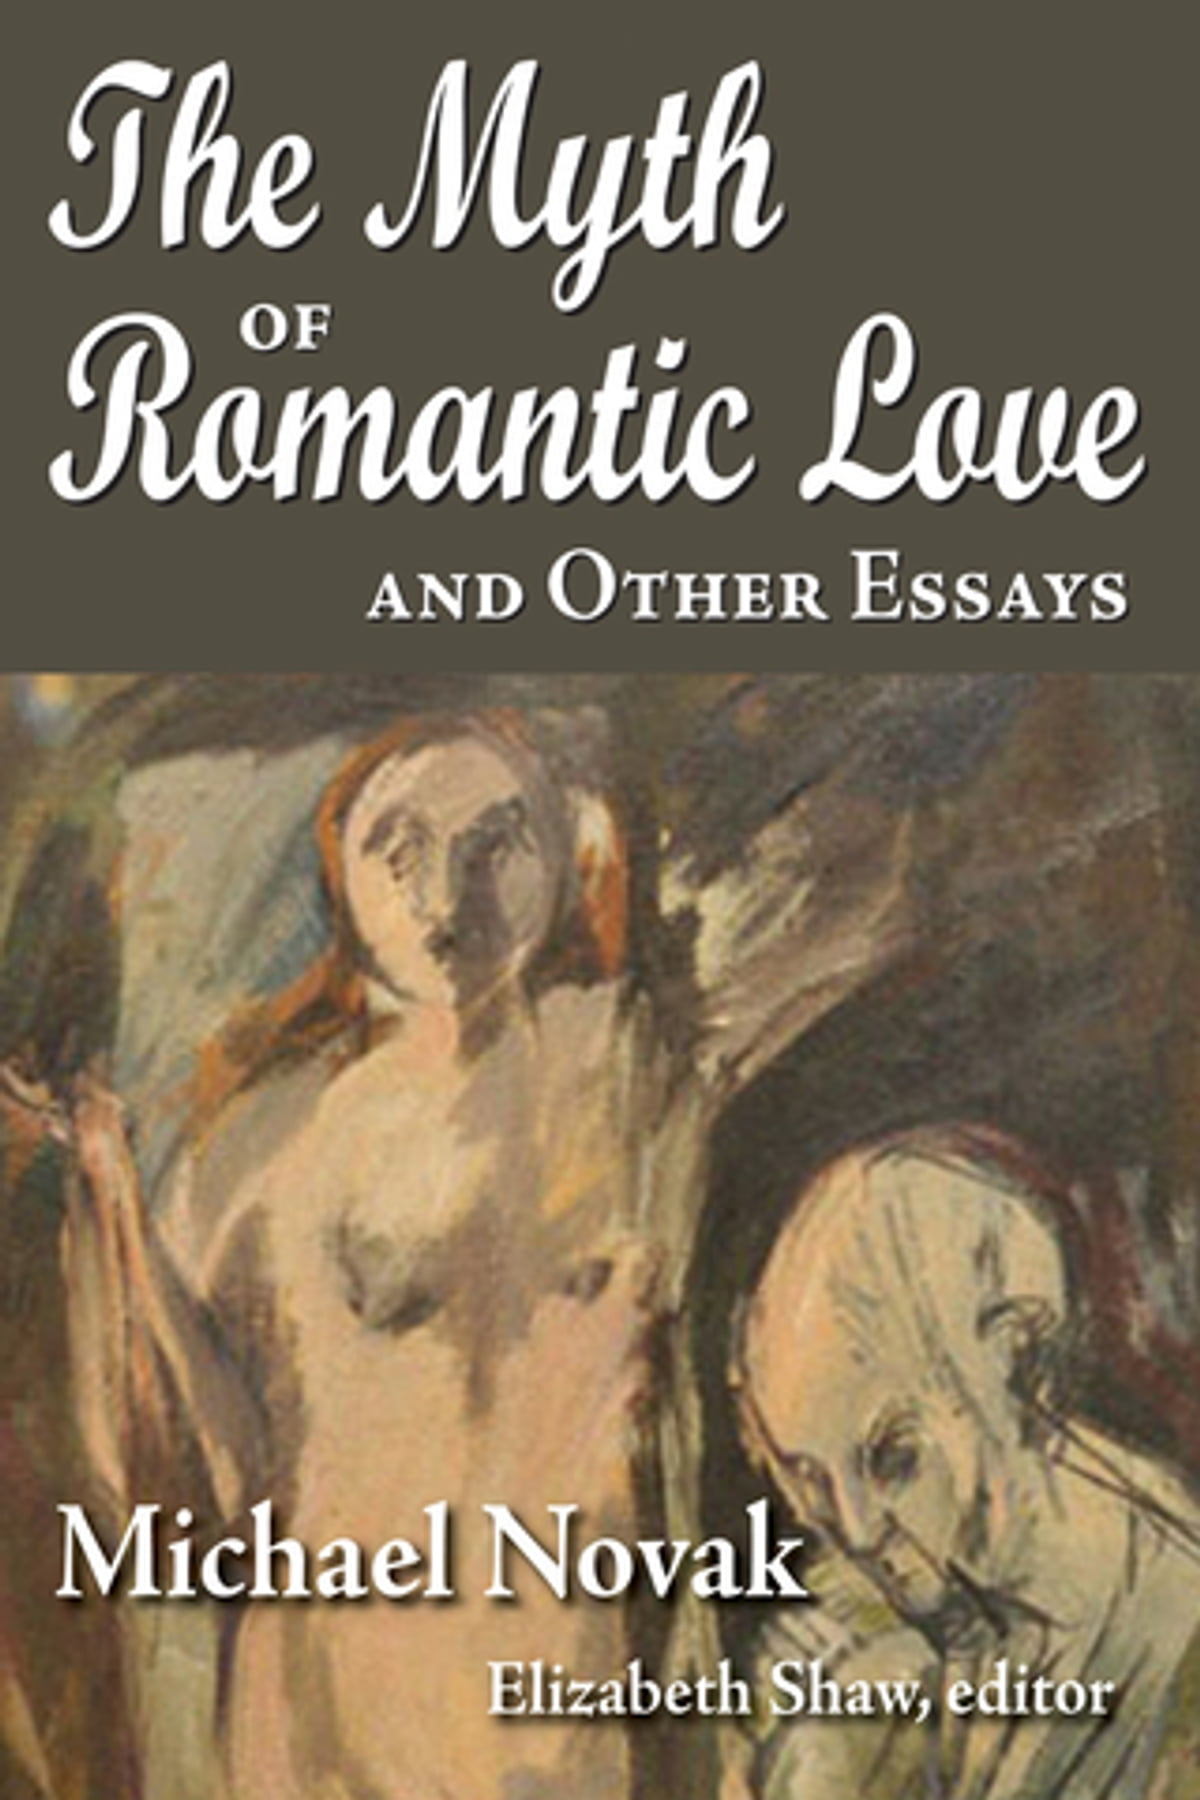 The Myth Of Romantic Love And Other Essays Ebook By Michael Novak   9781412848053  Kobo